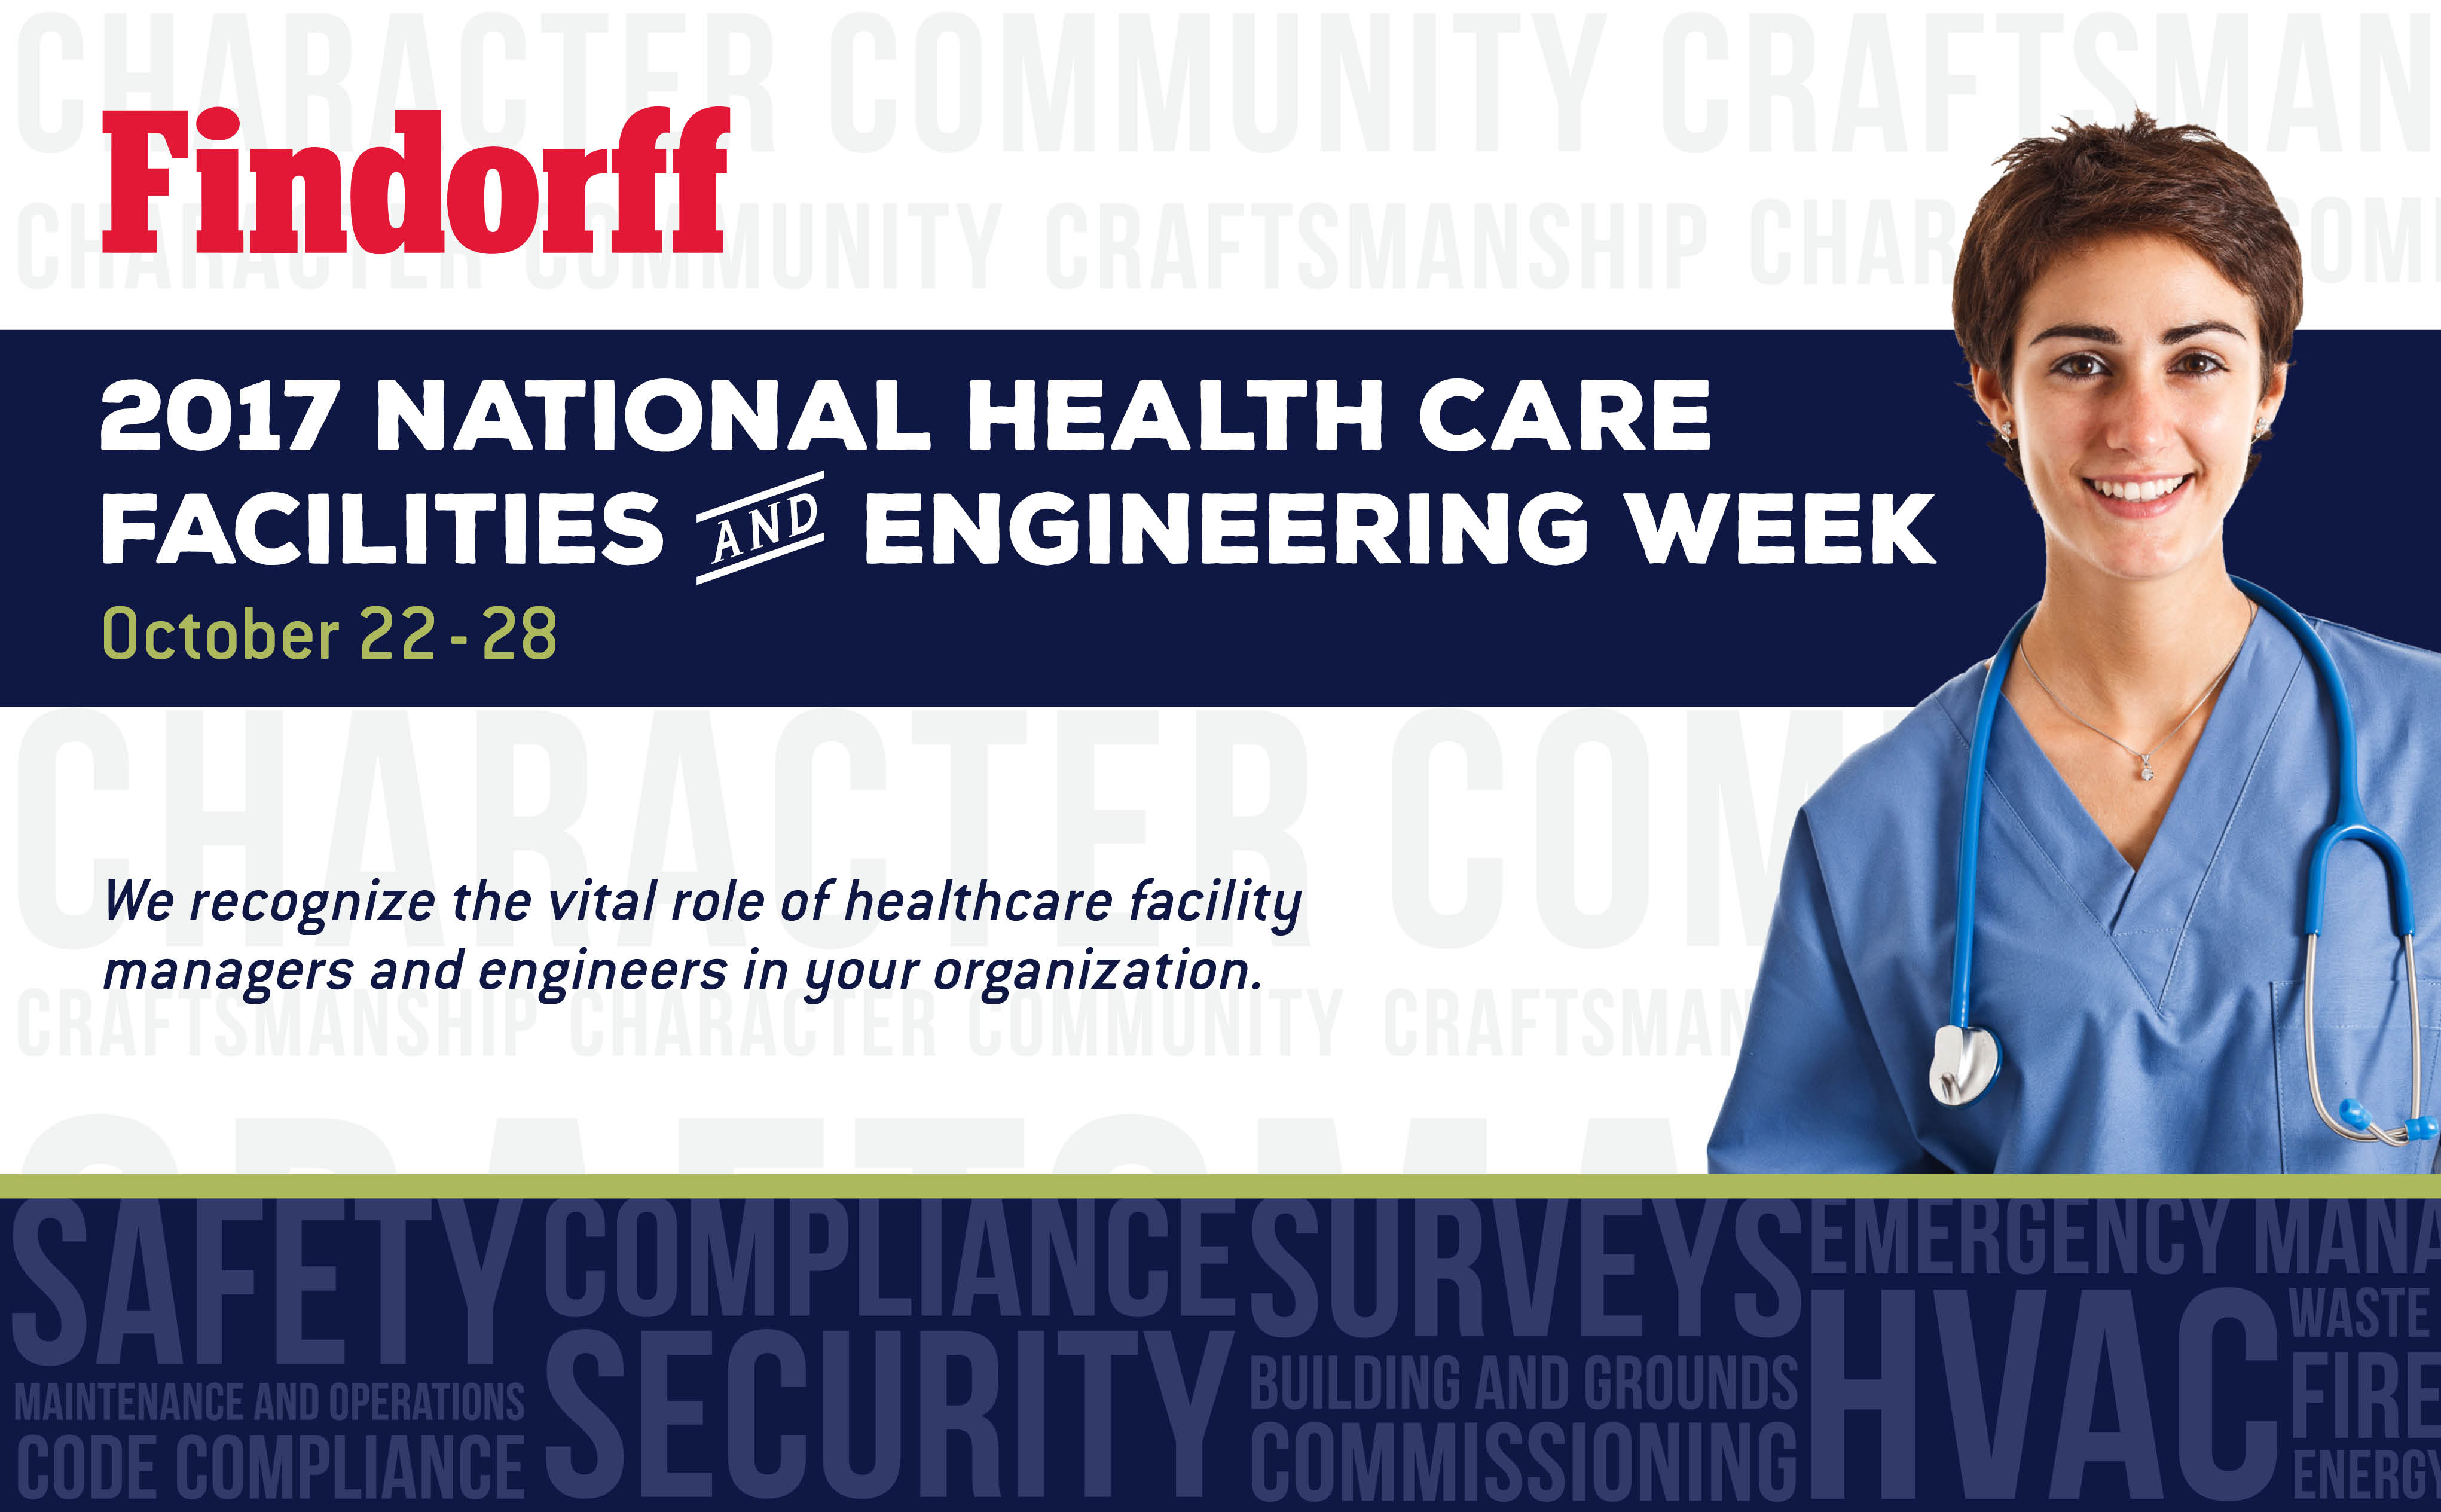 2017 National Healthcare Facilities and Engineering Week Blog image